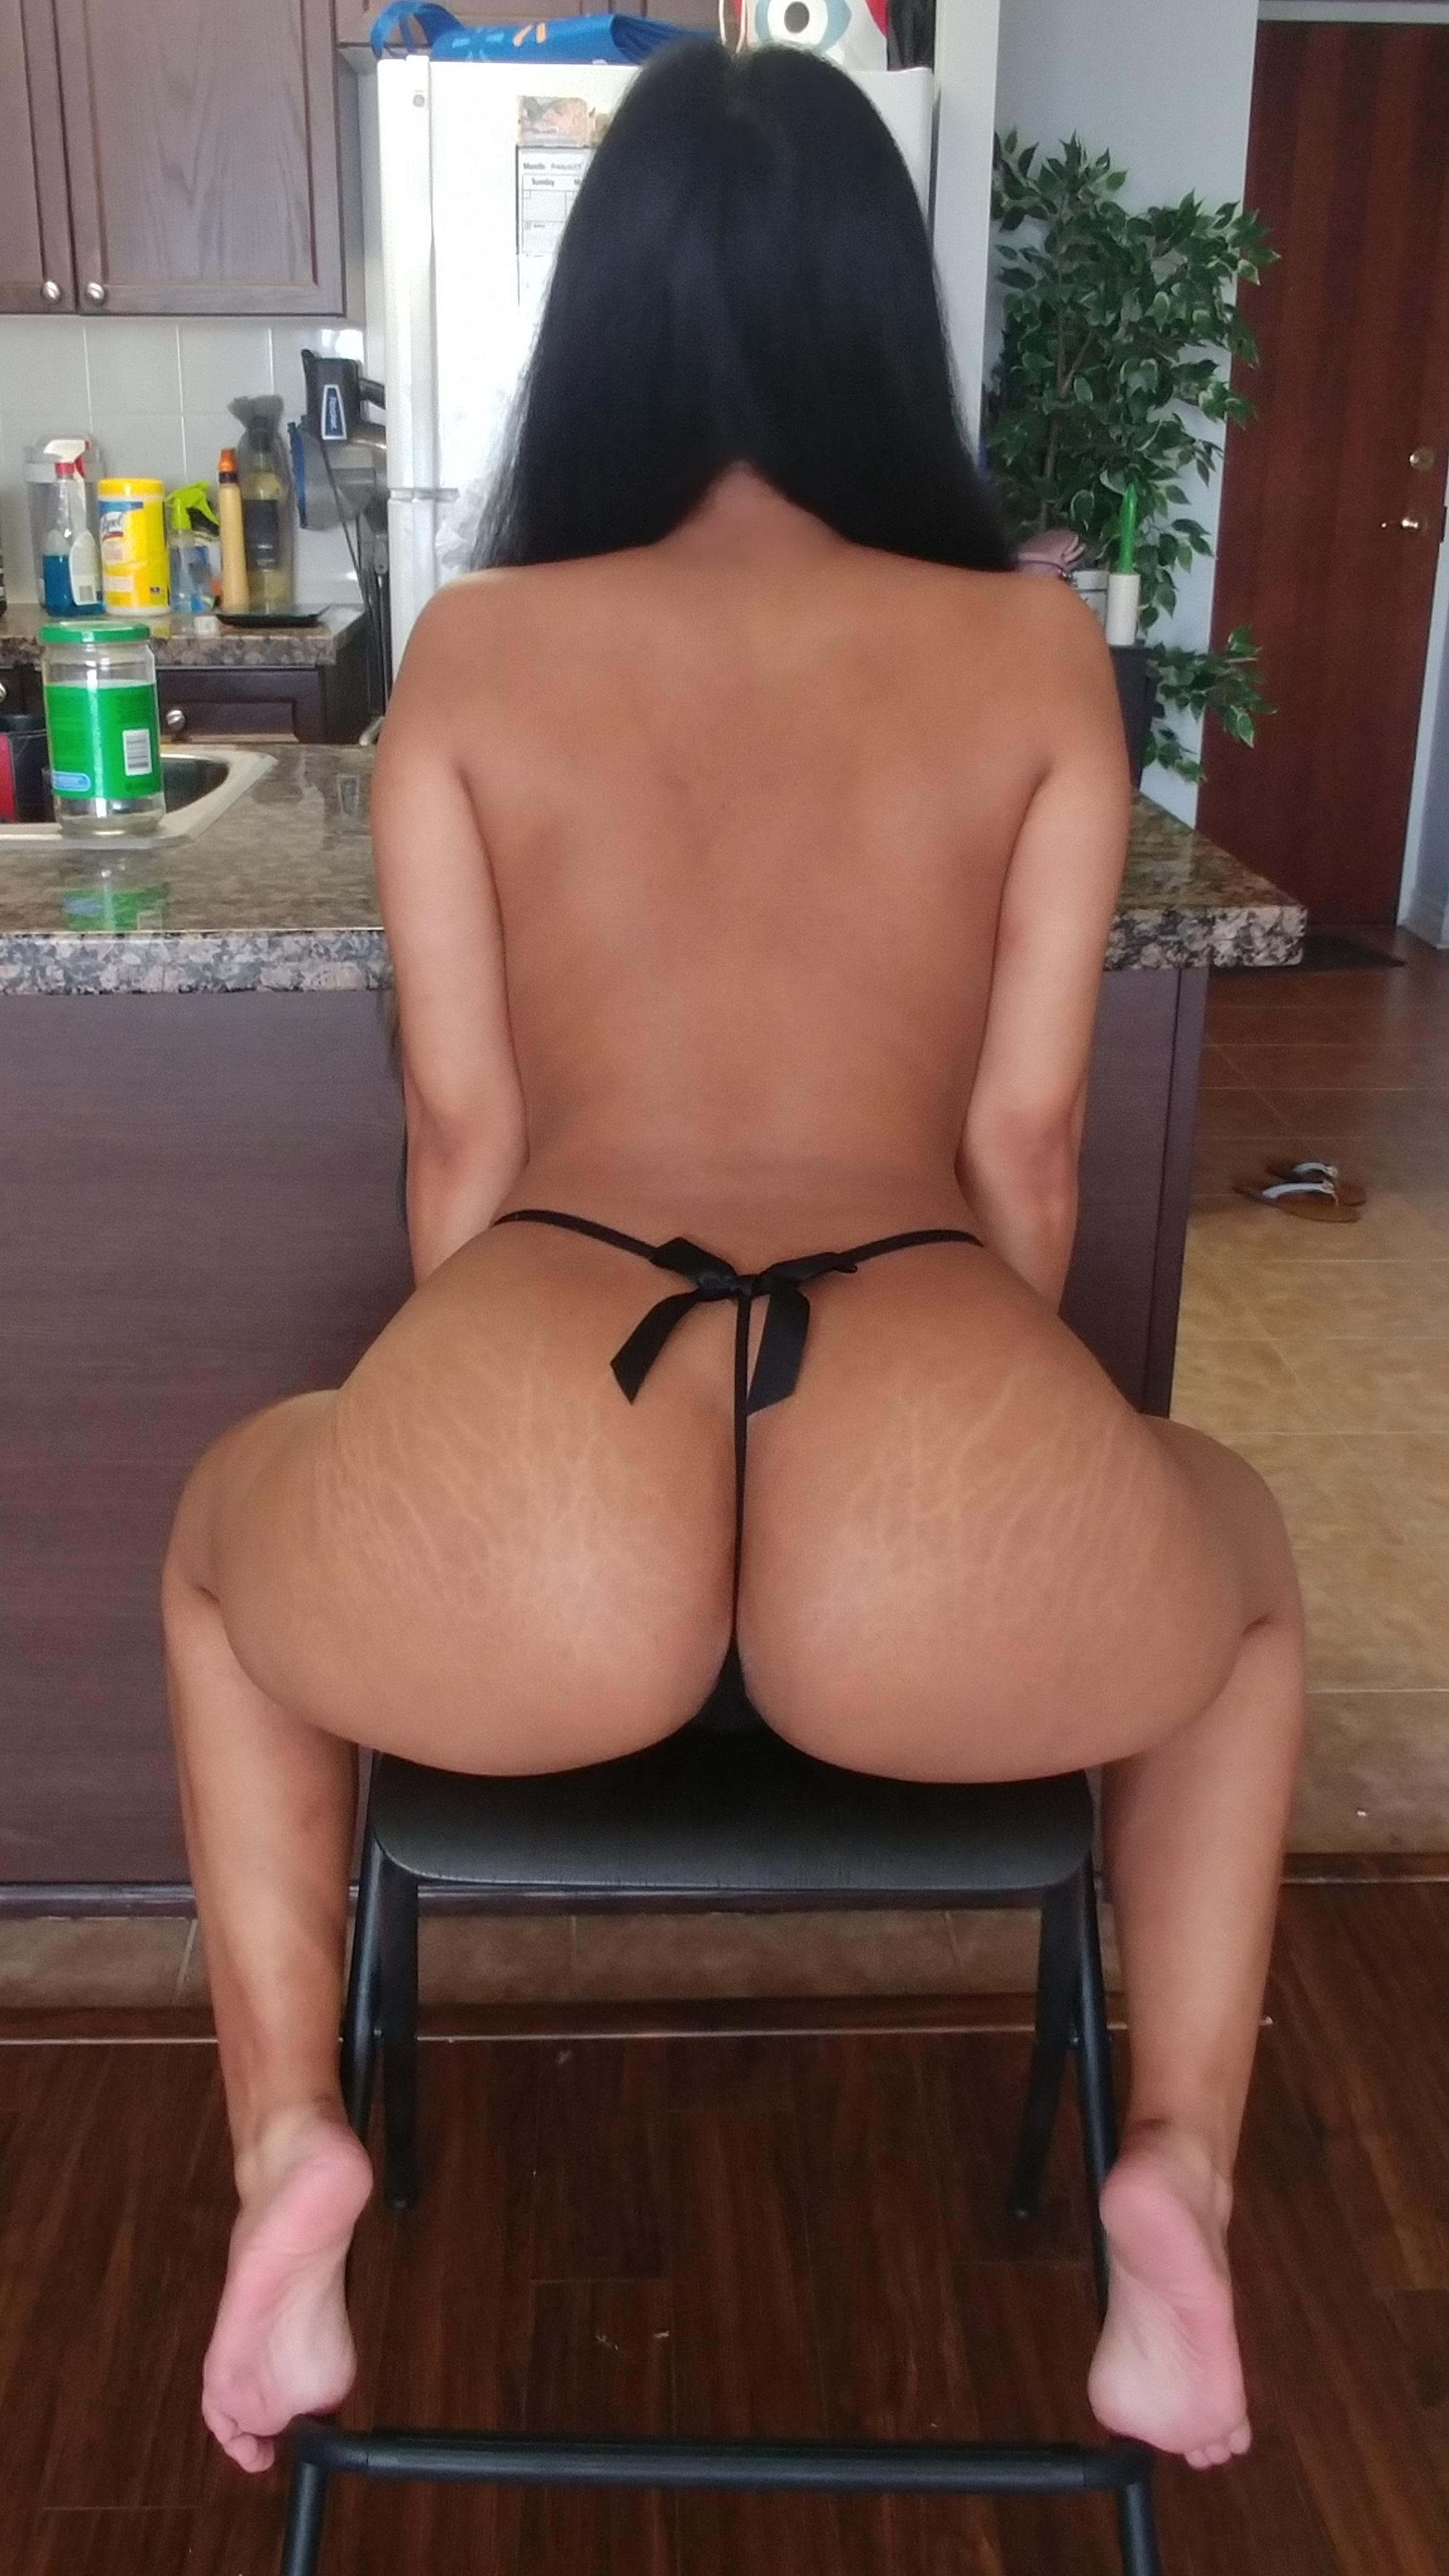 One of our naked asian pics called Wanna unwrap my bow?